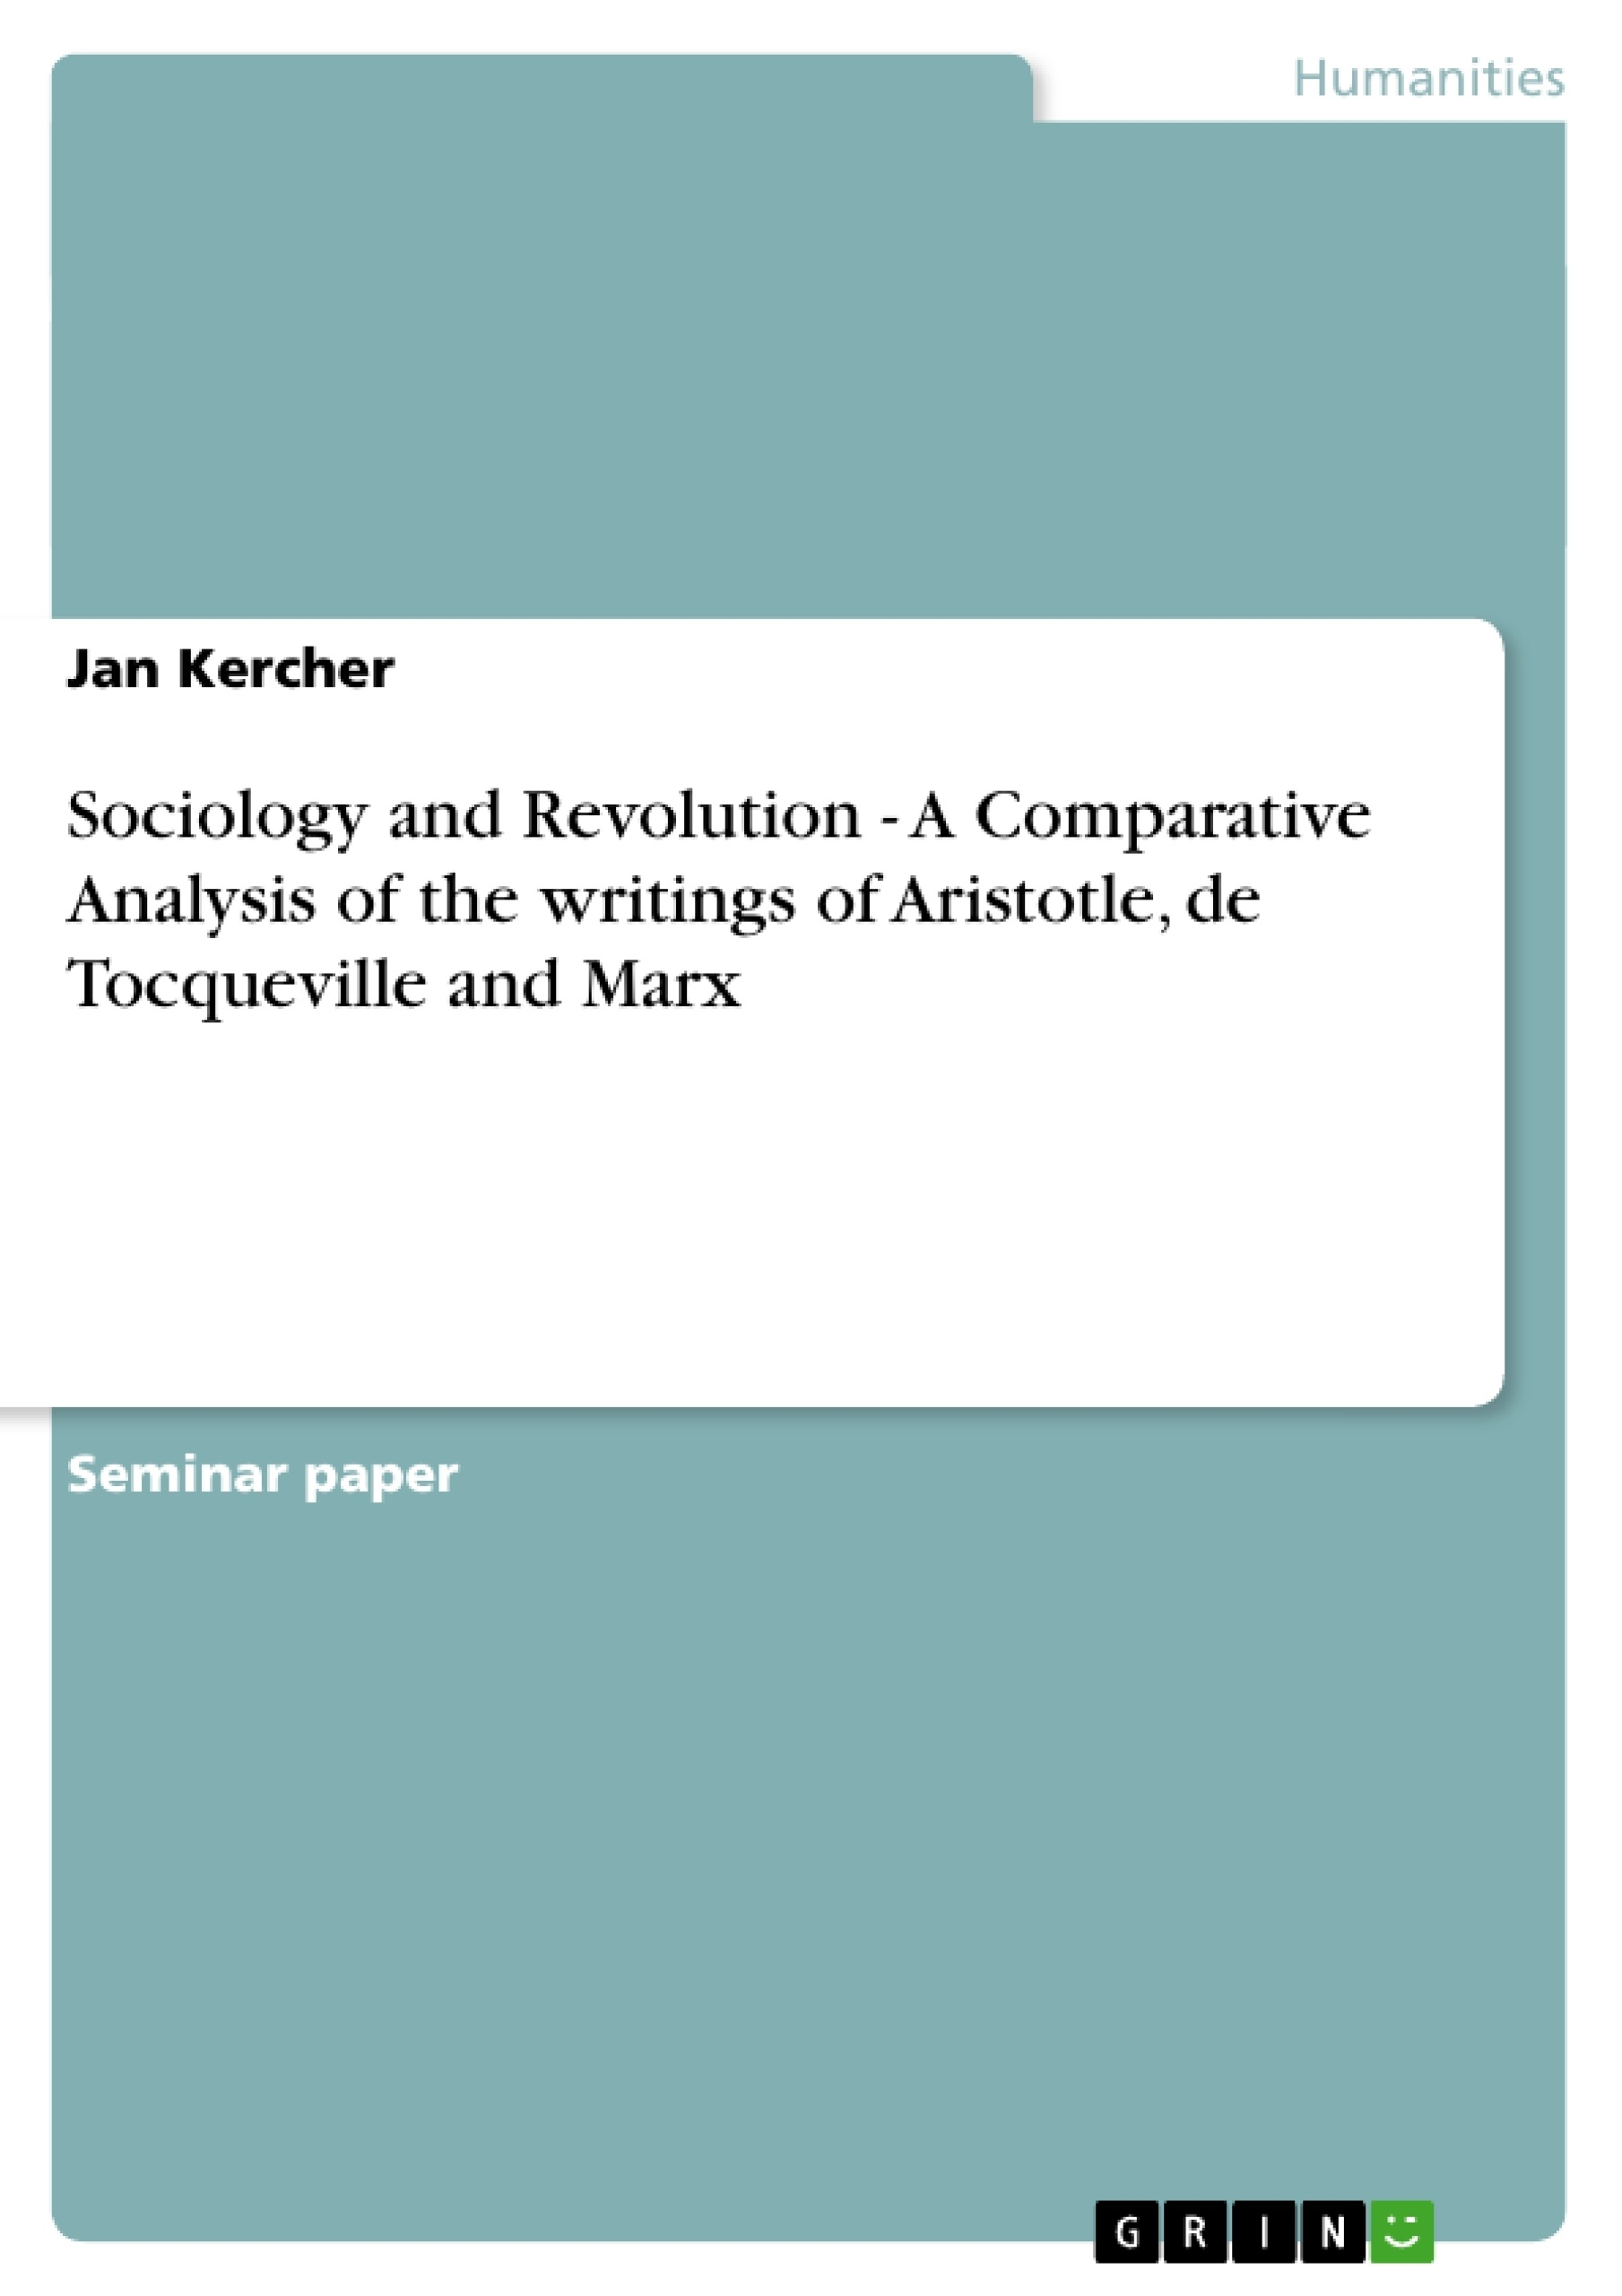 Title: Sociology and Revolution - A Comparative Analysis of the writings of Aristotle, de Tocqueville and Marx